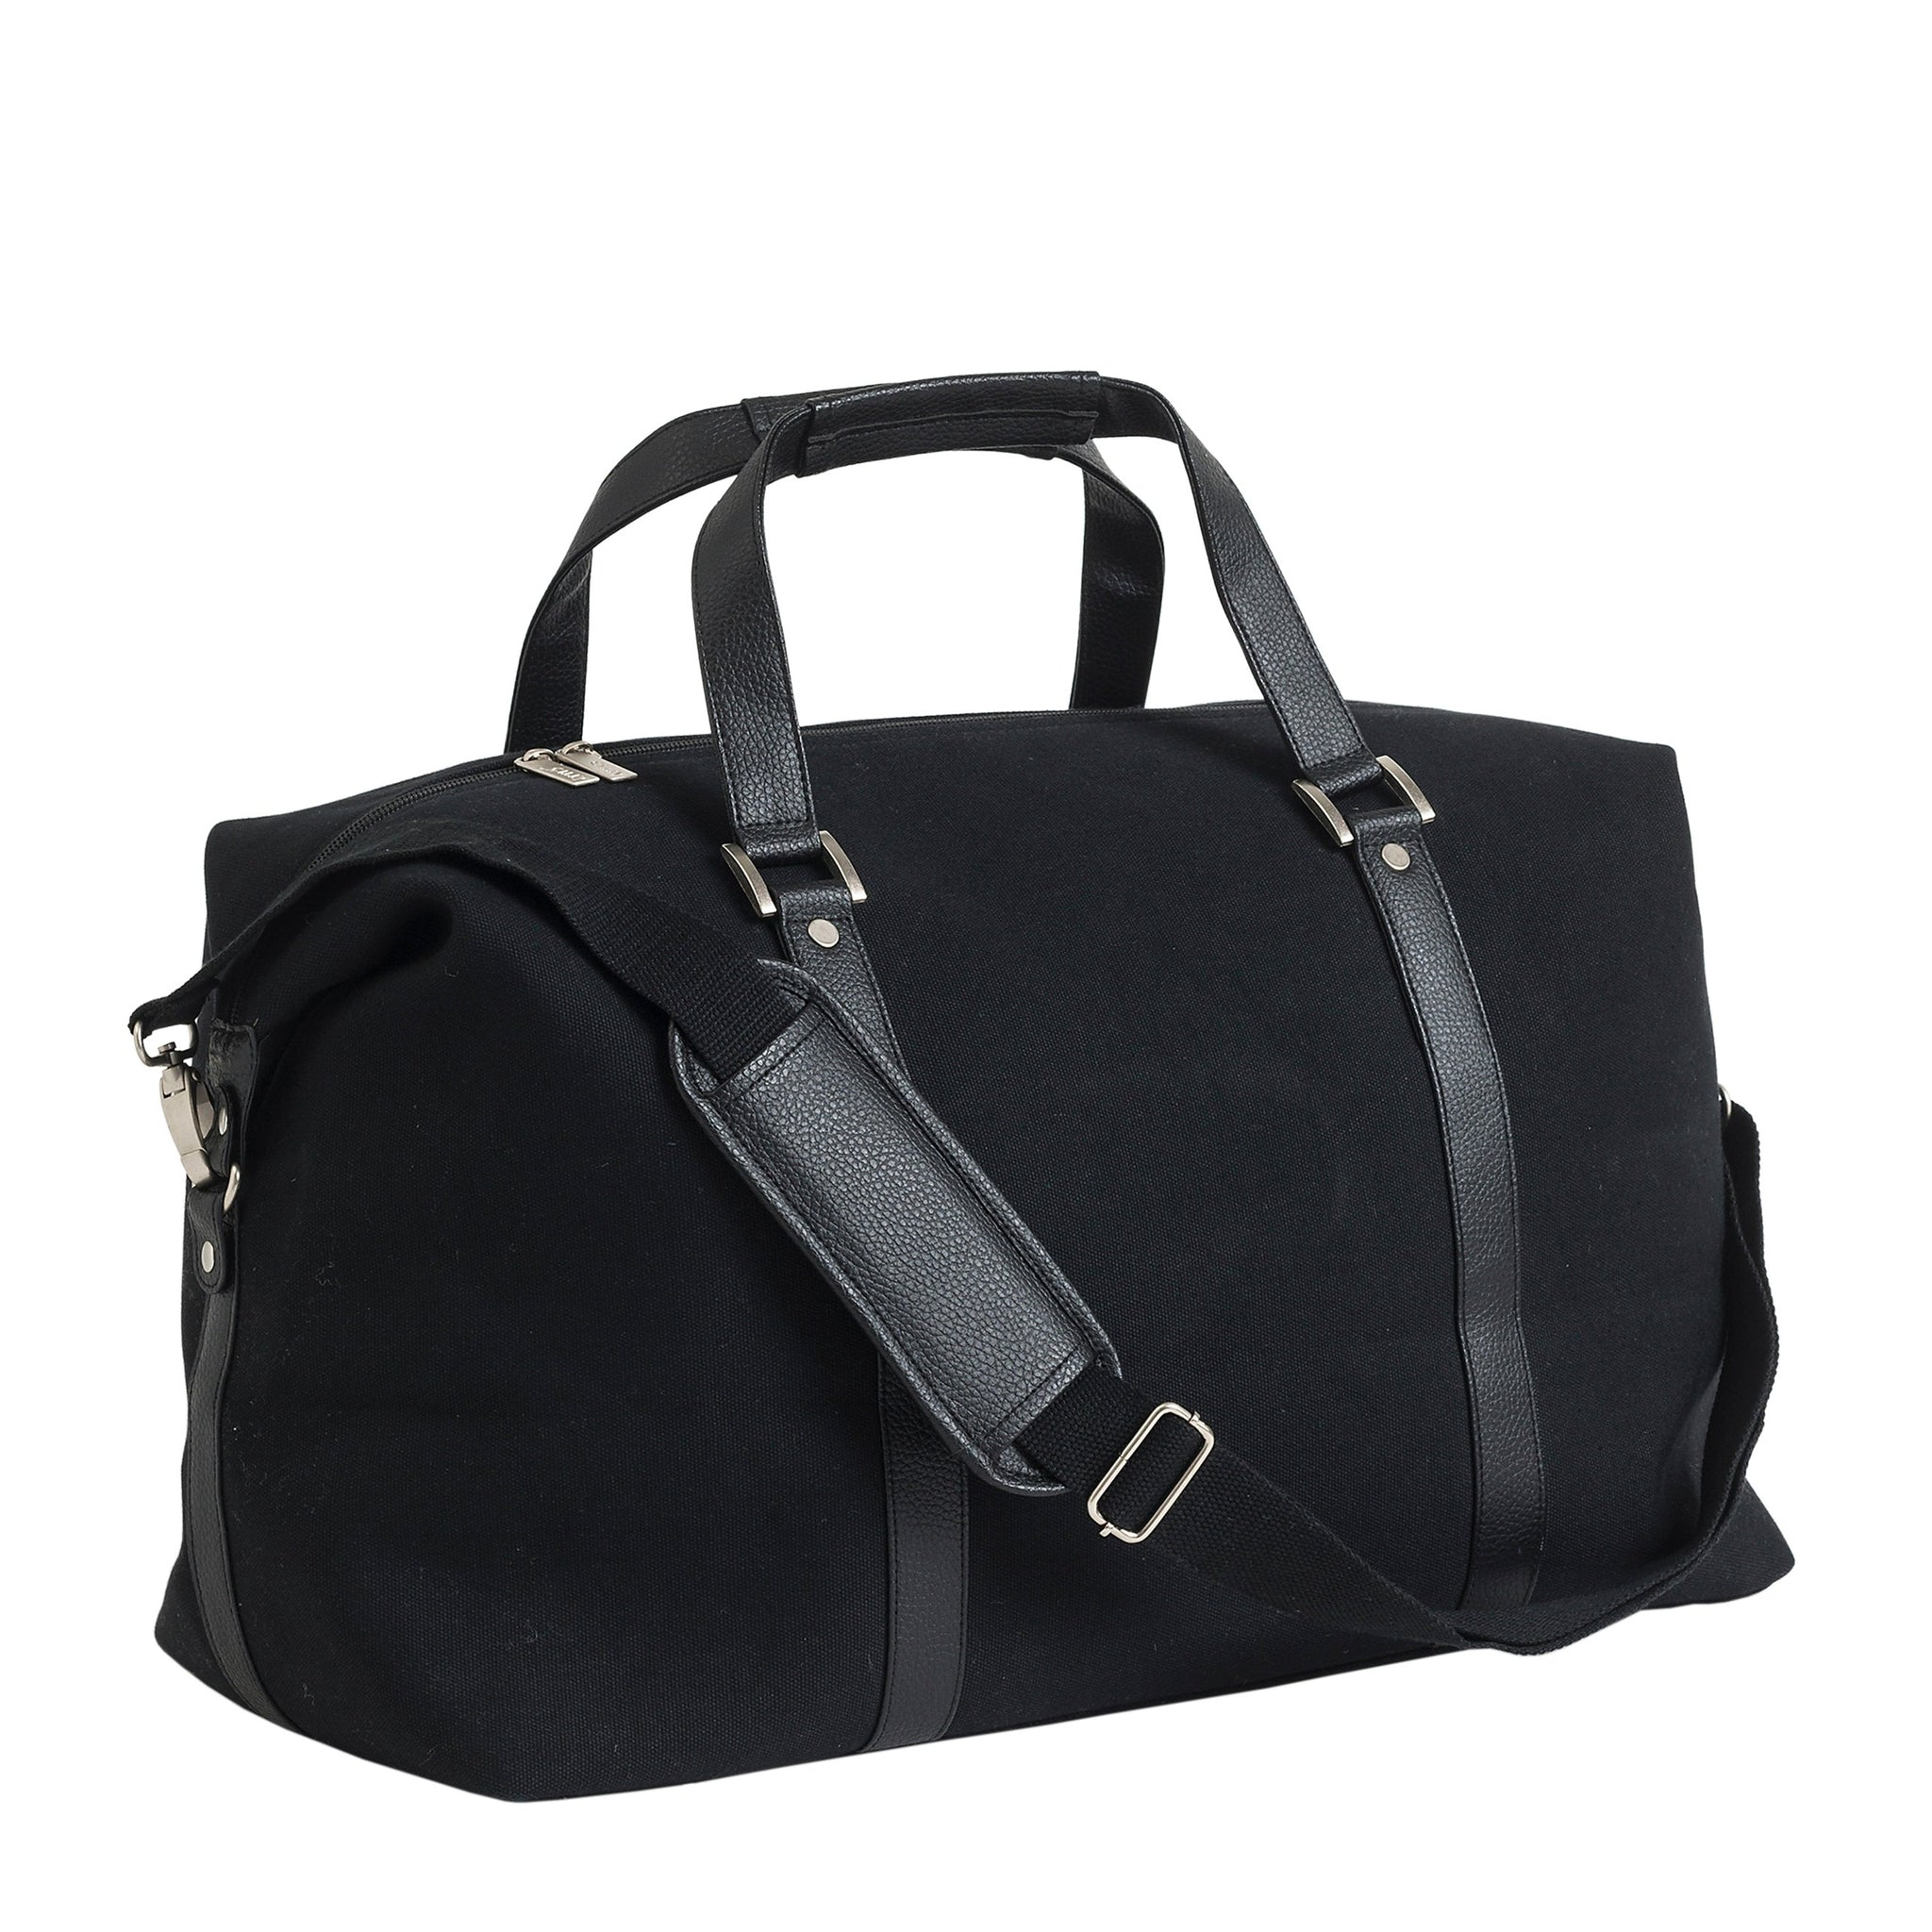 7c5c29350b92 Canvas Weekender Bag - Black